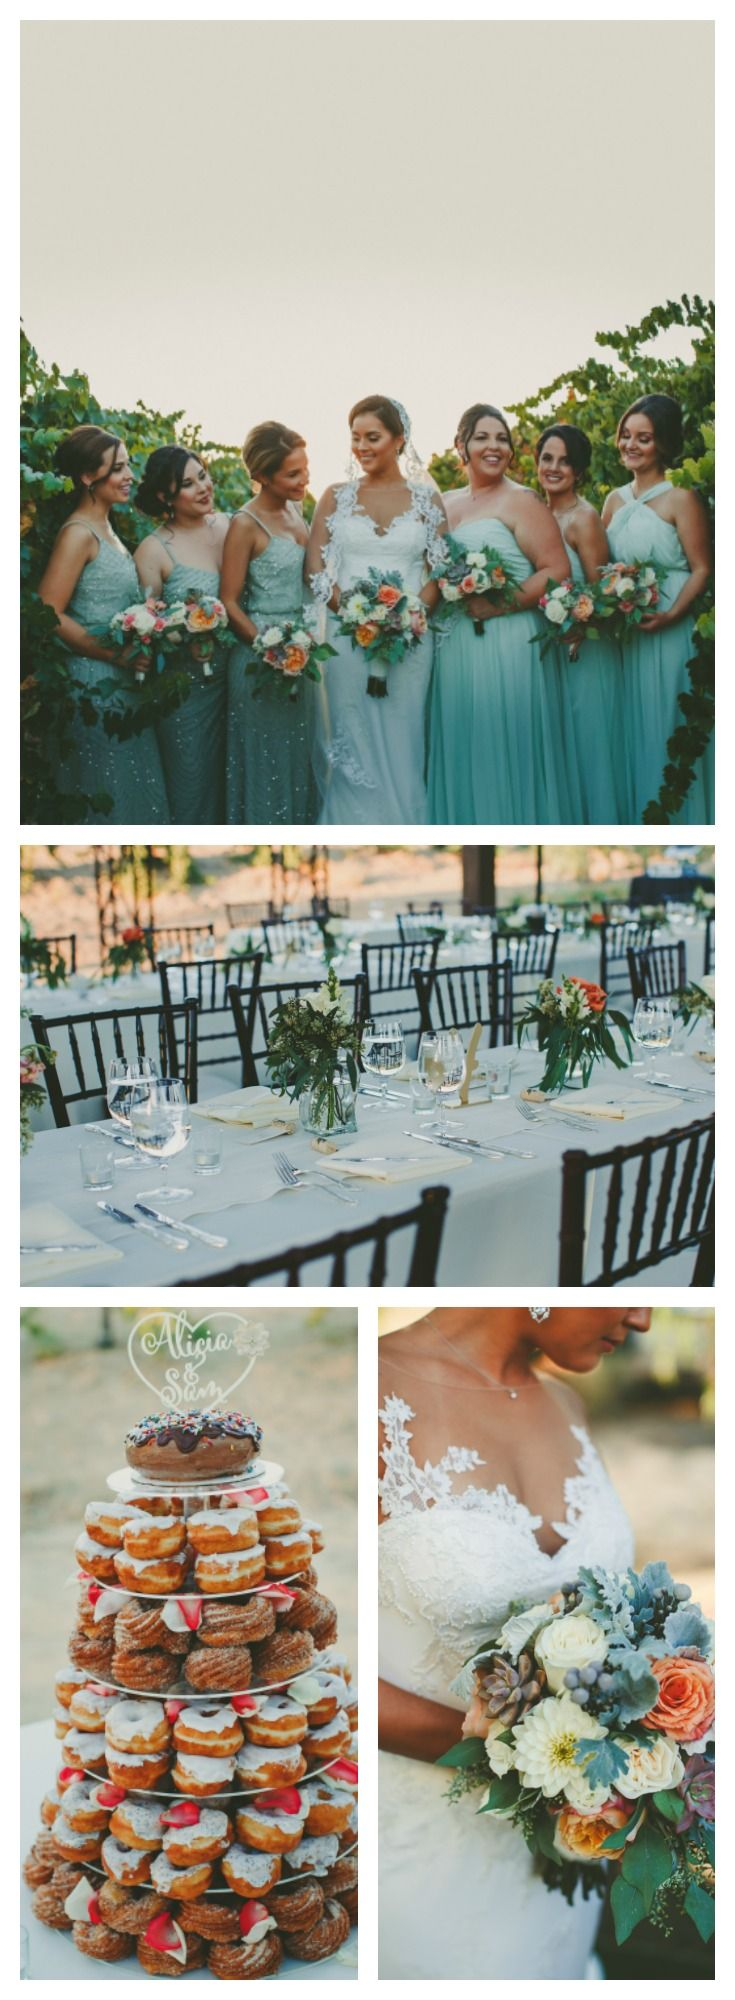 Sam and Alicia's Temecula Wine Country Wedding | #realwedding weddinginspiration #wedding